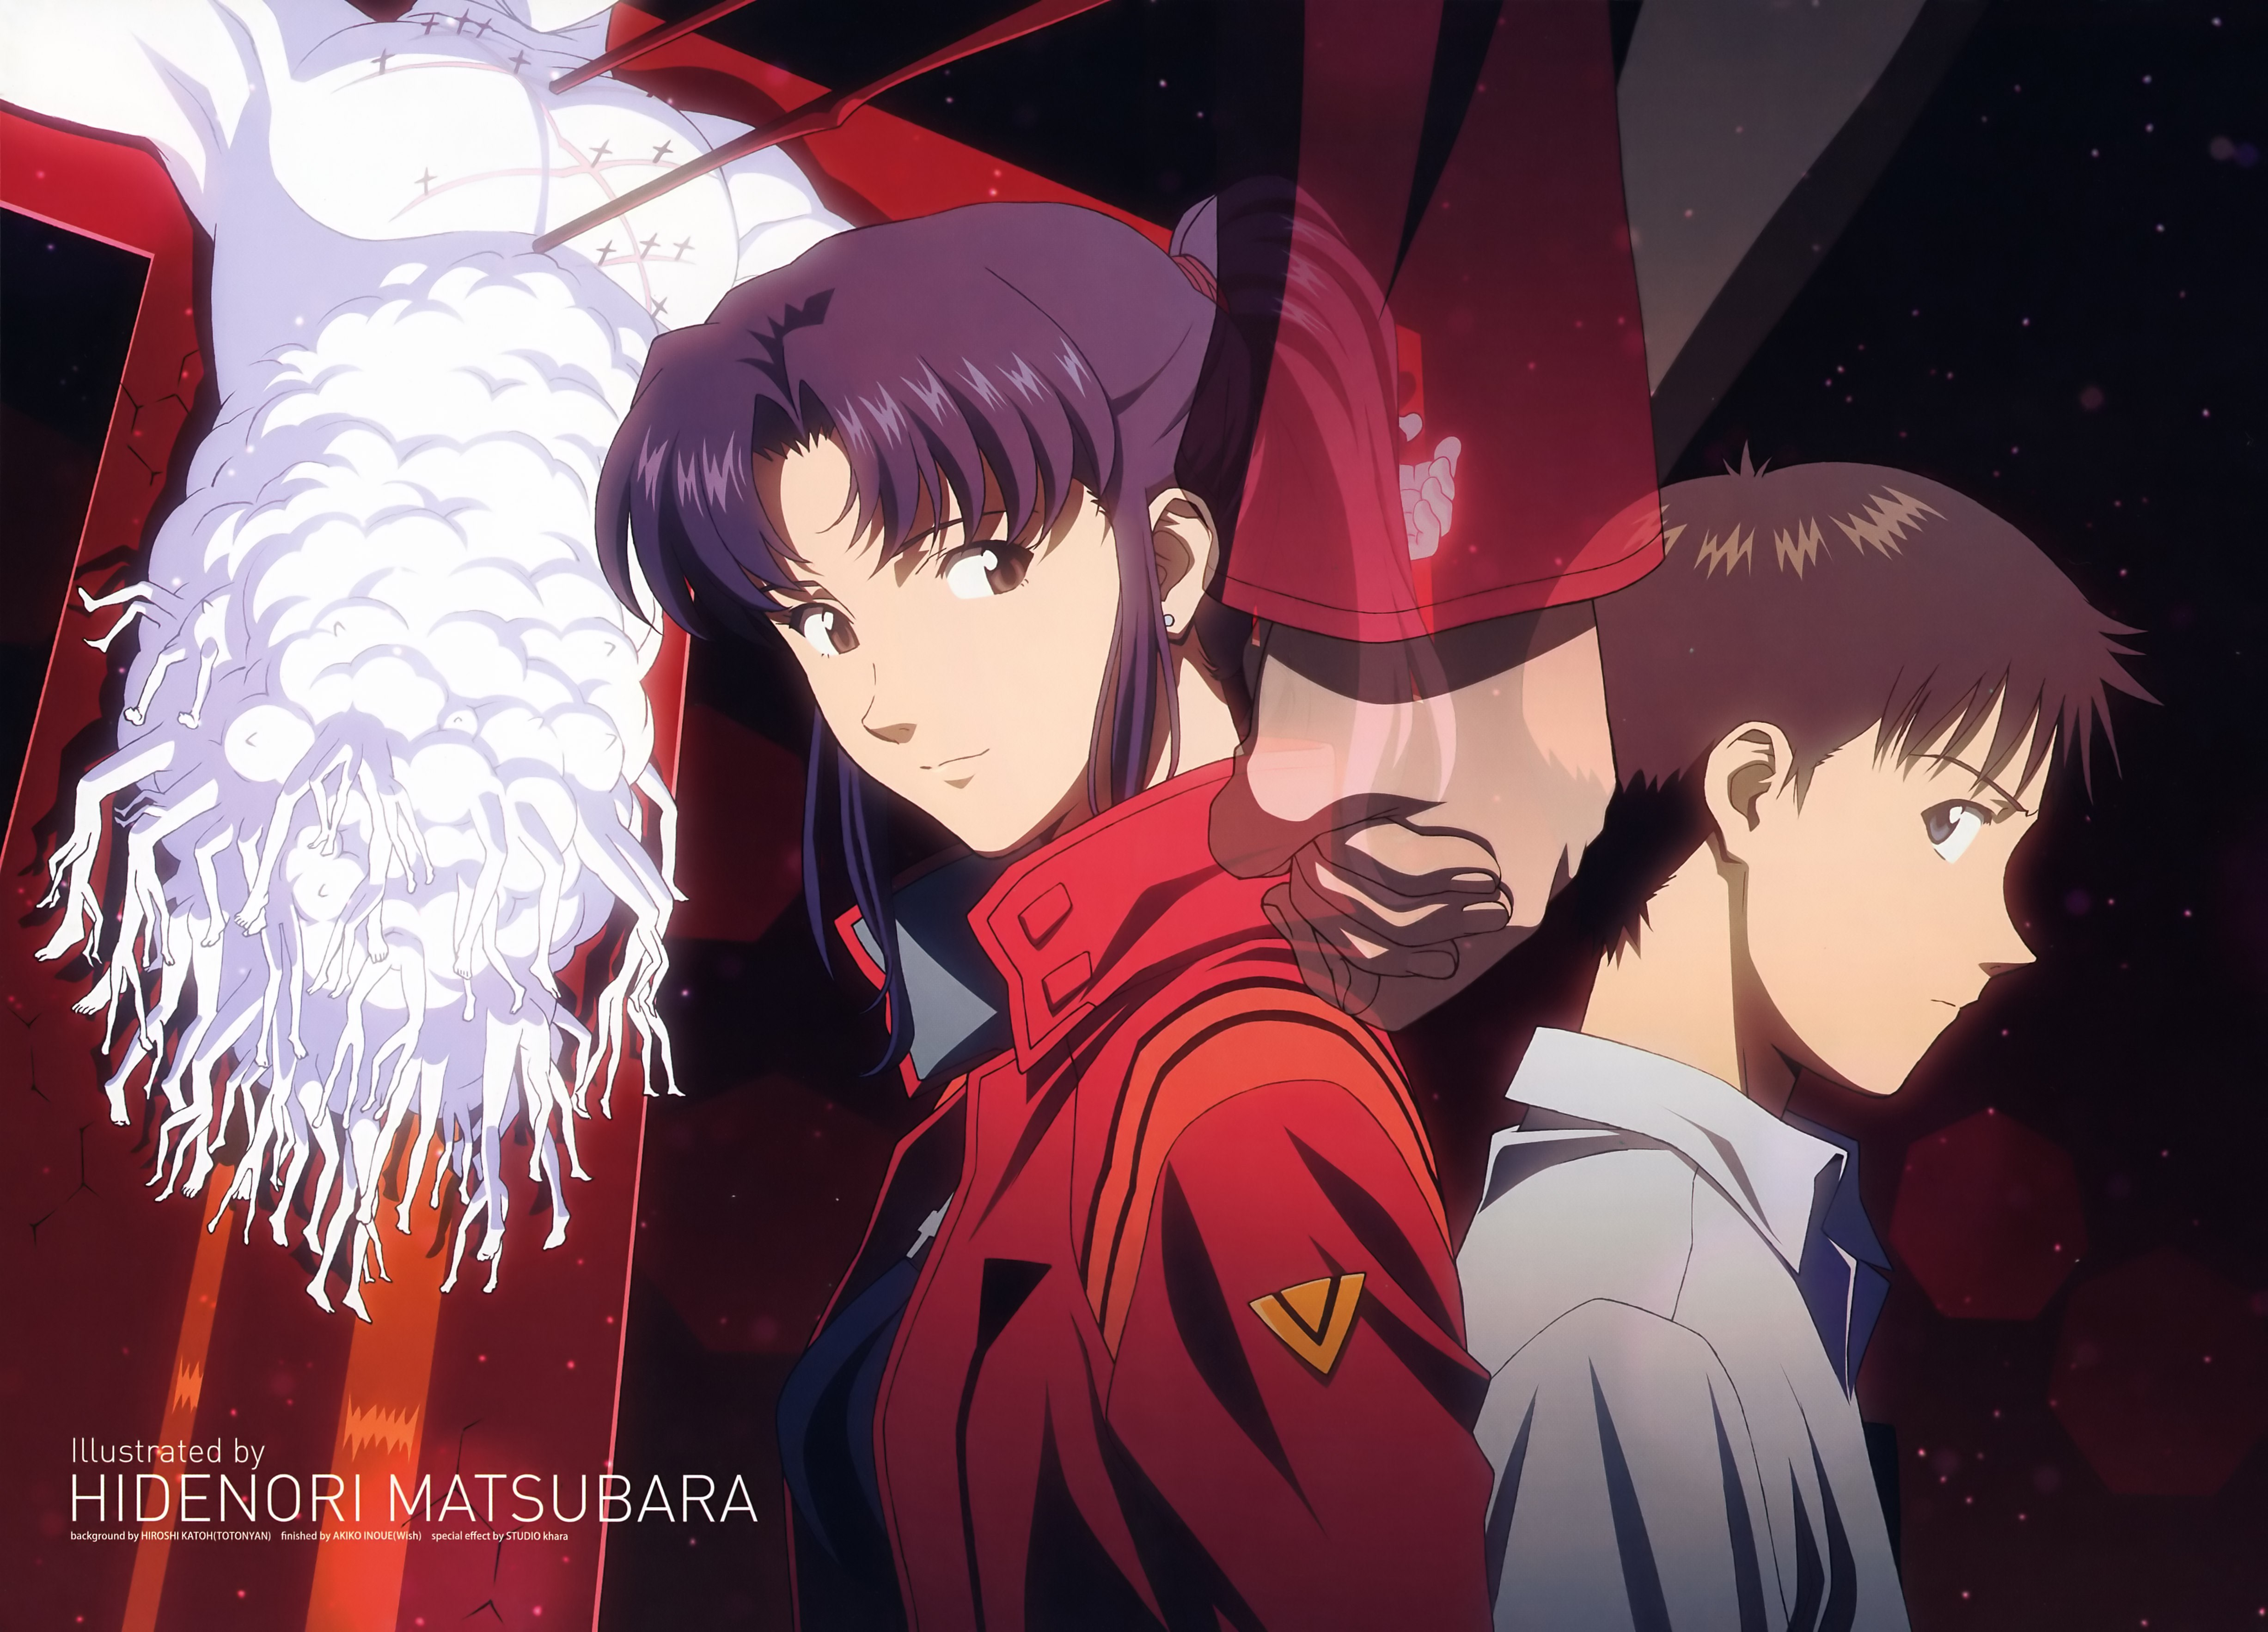 Neon Genesis Evangelion 4k Ultra Hd Wallpaper High Quality Walls